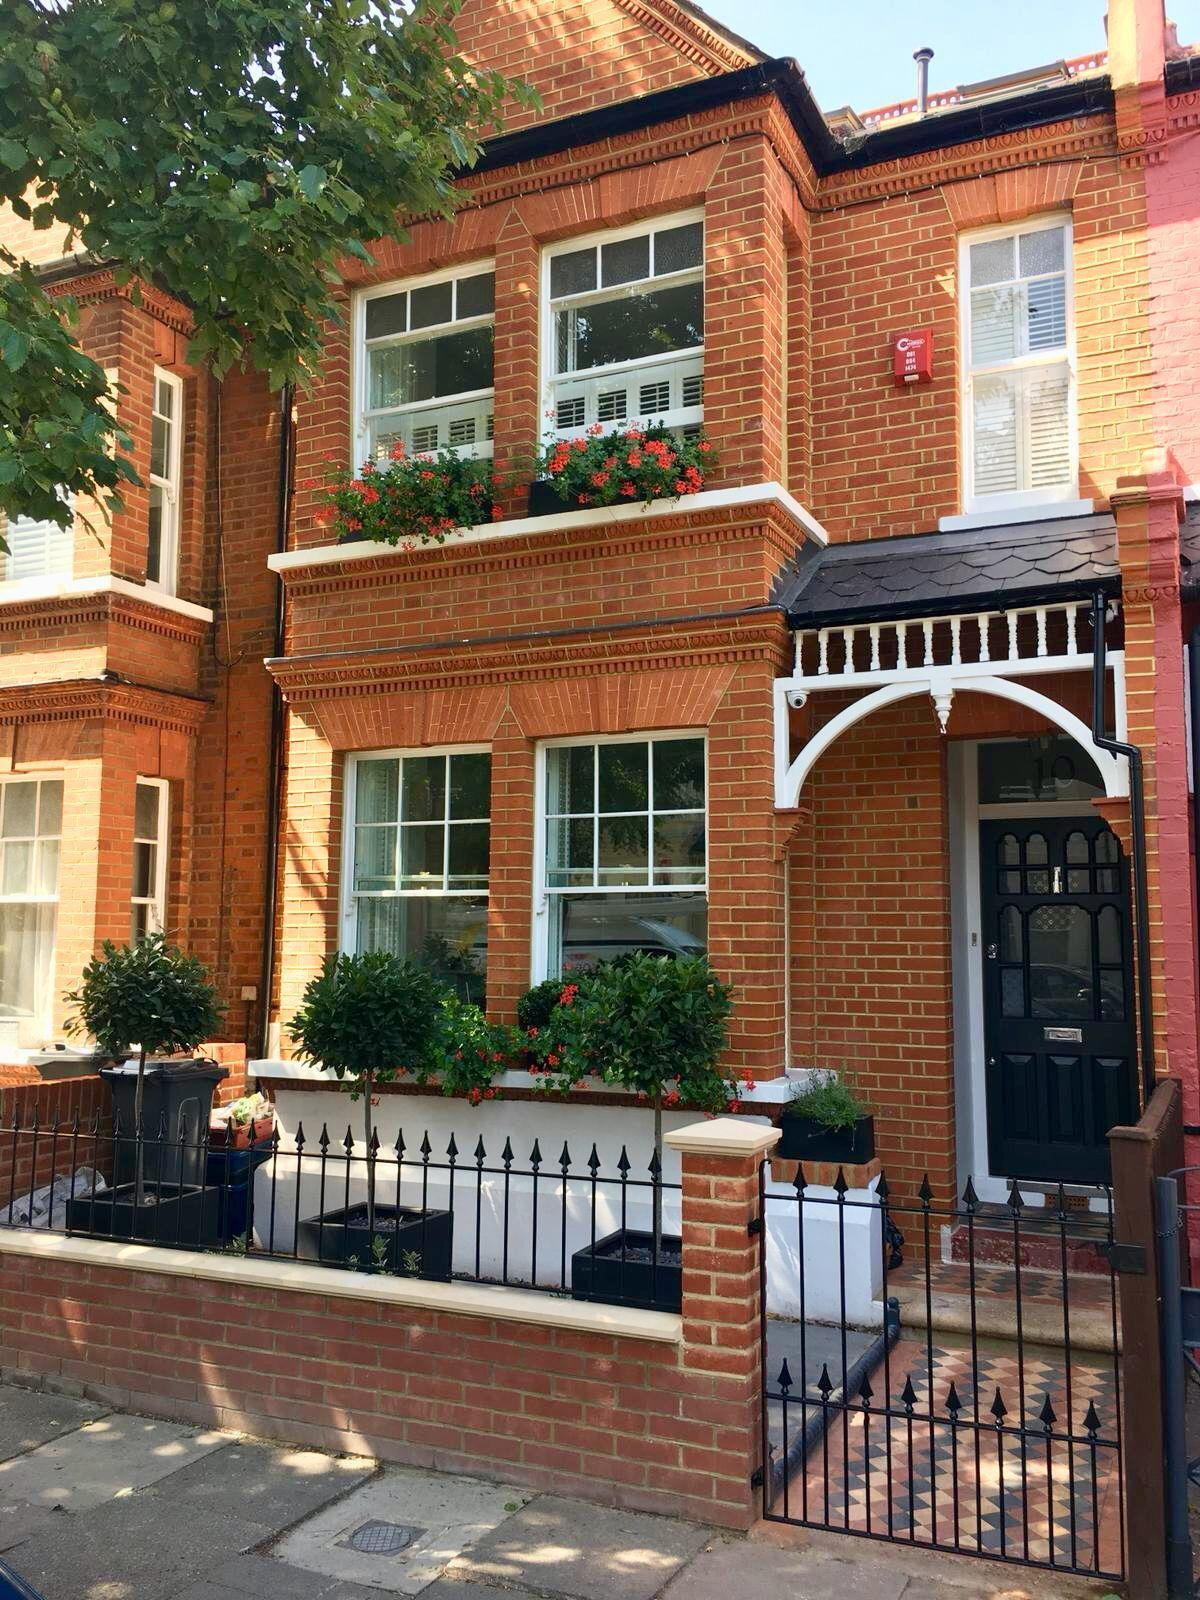 West London Pretty Edwardian Terraced House Front Garden With Fabricated Metal Iron Wall Railings In 2020 Terrace House Exterior House Front Victorian Terrace House